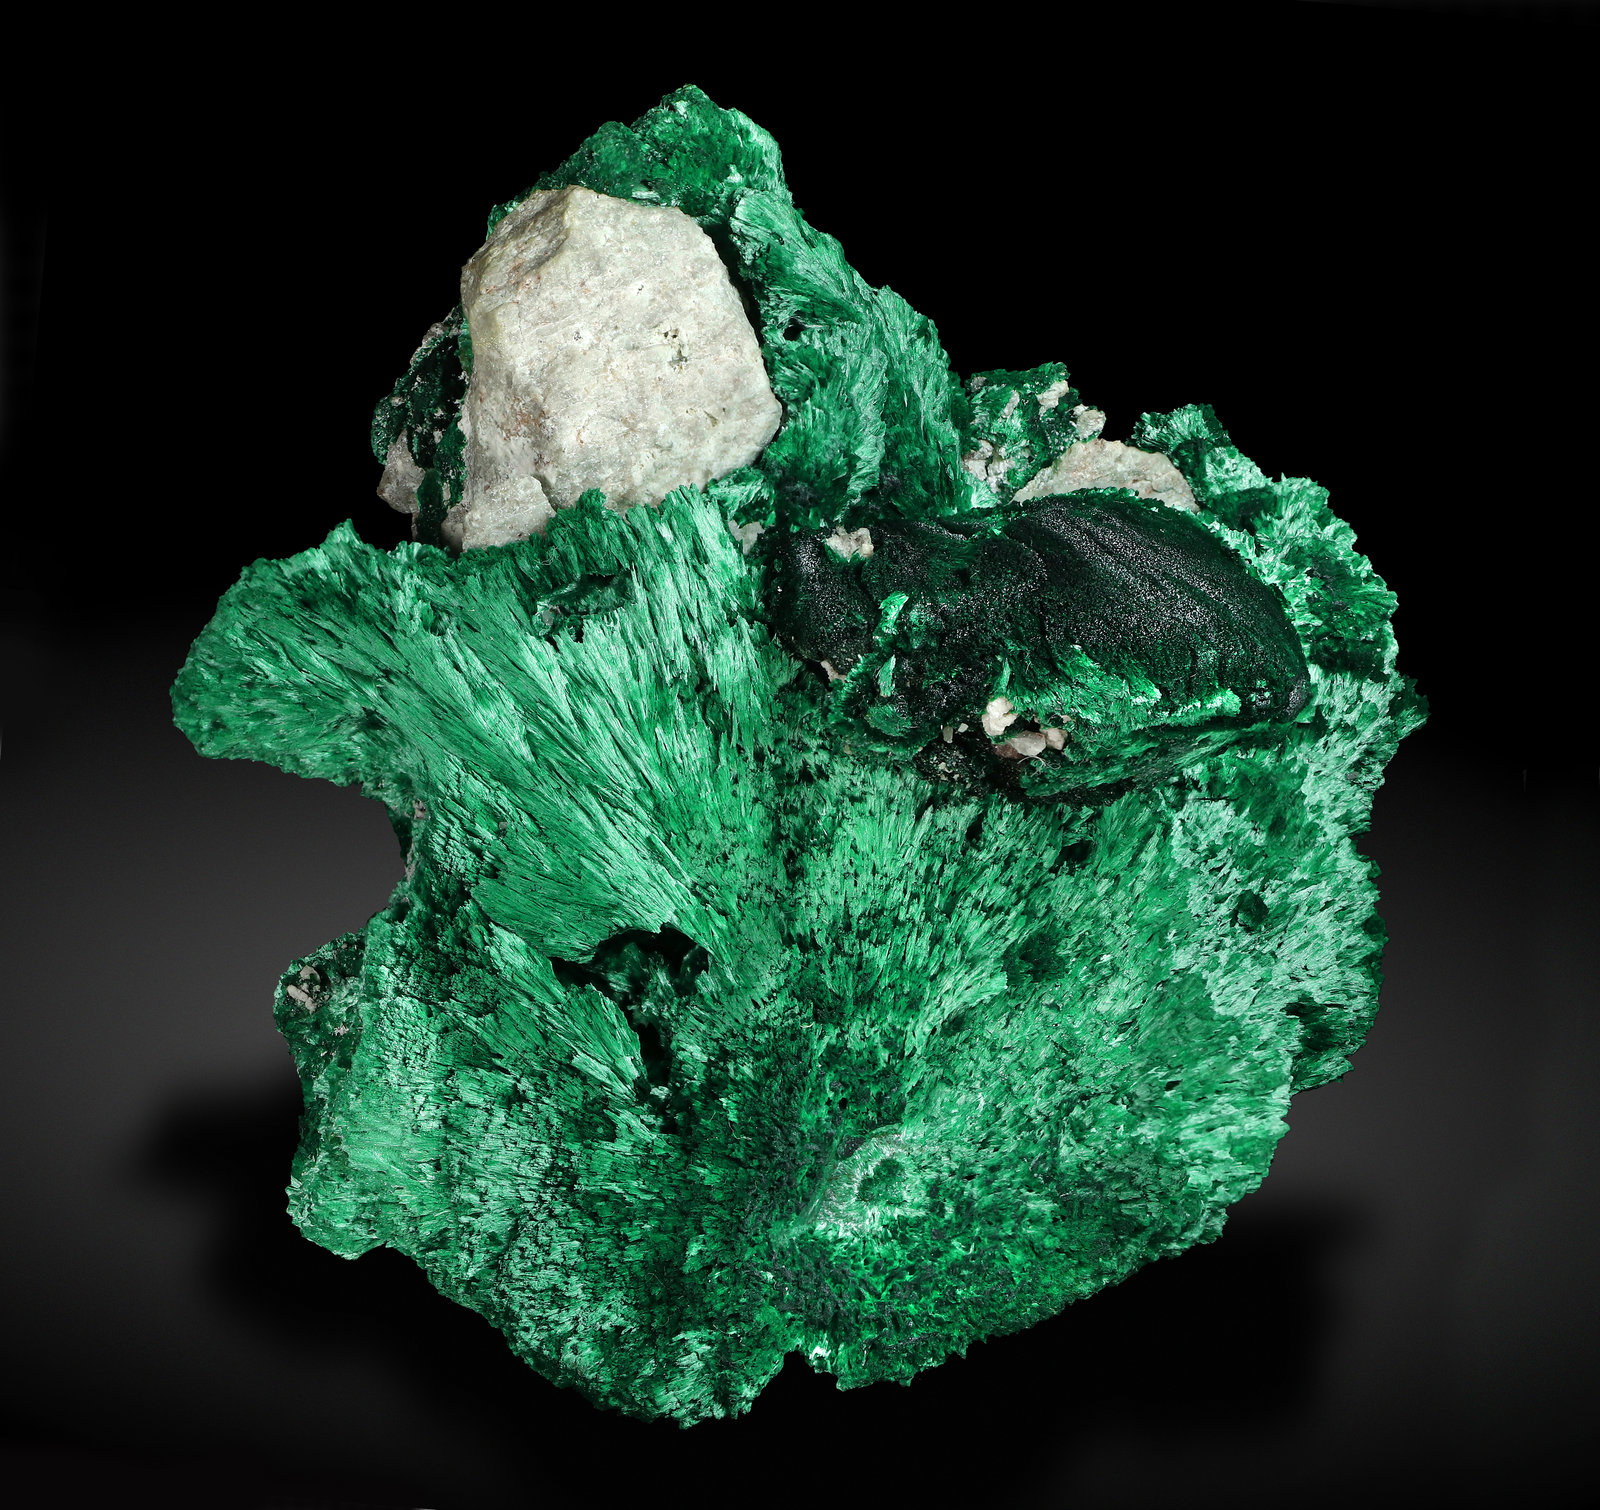 specimens/s_imagesAL7/Malachite-TE27AL7_1247_s.jpg